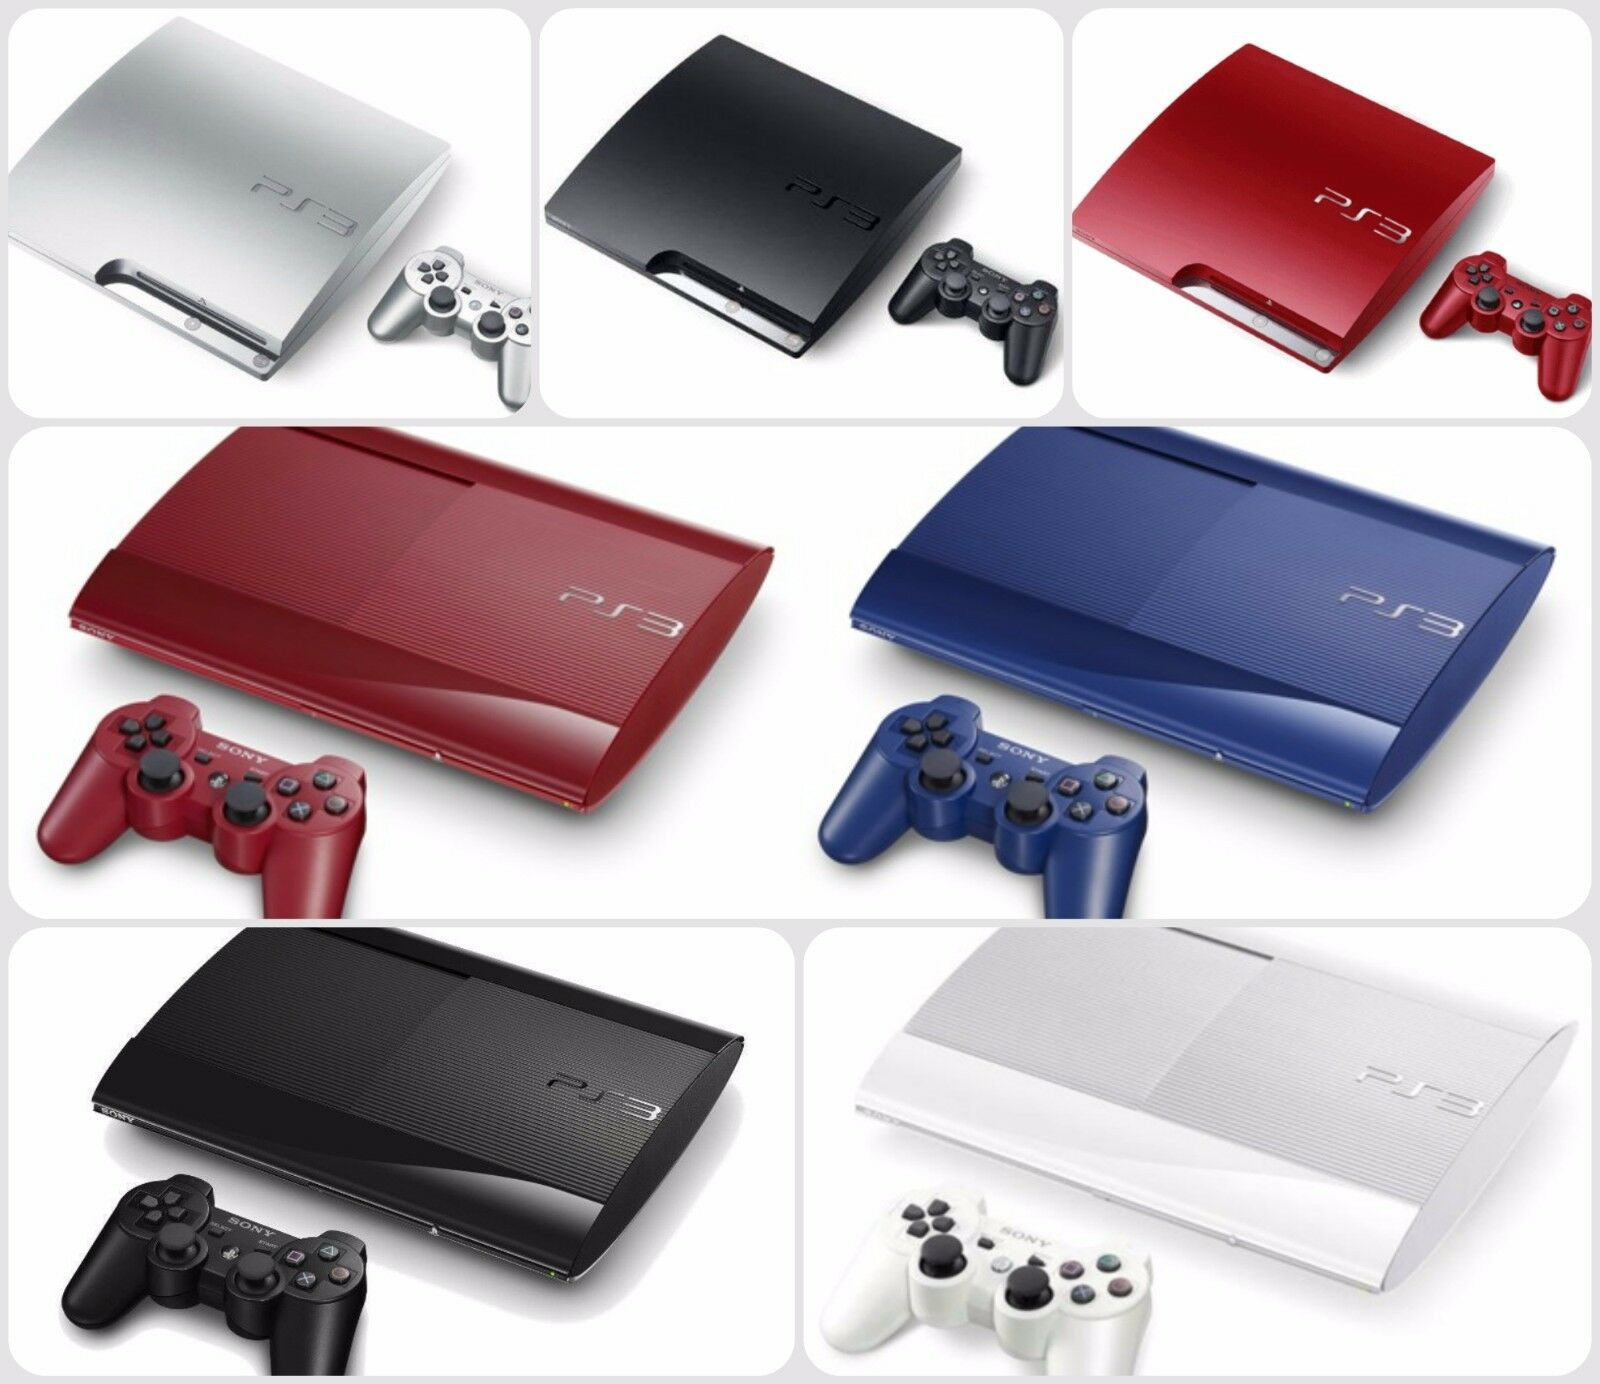 Sony playstation 3 ps3 console limited edition pre owned good condition picclick uk - Ps3 limited edition console ...